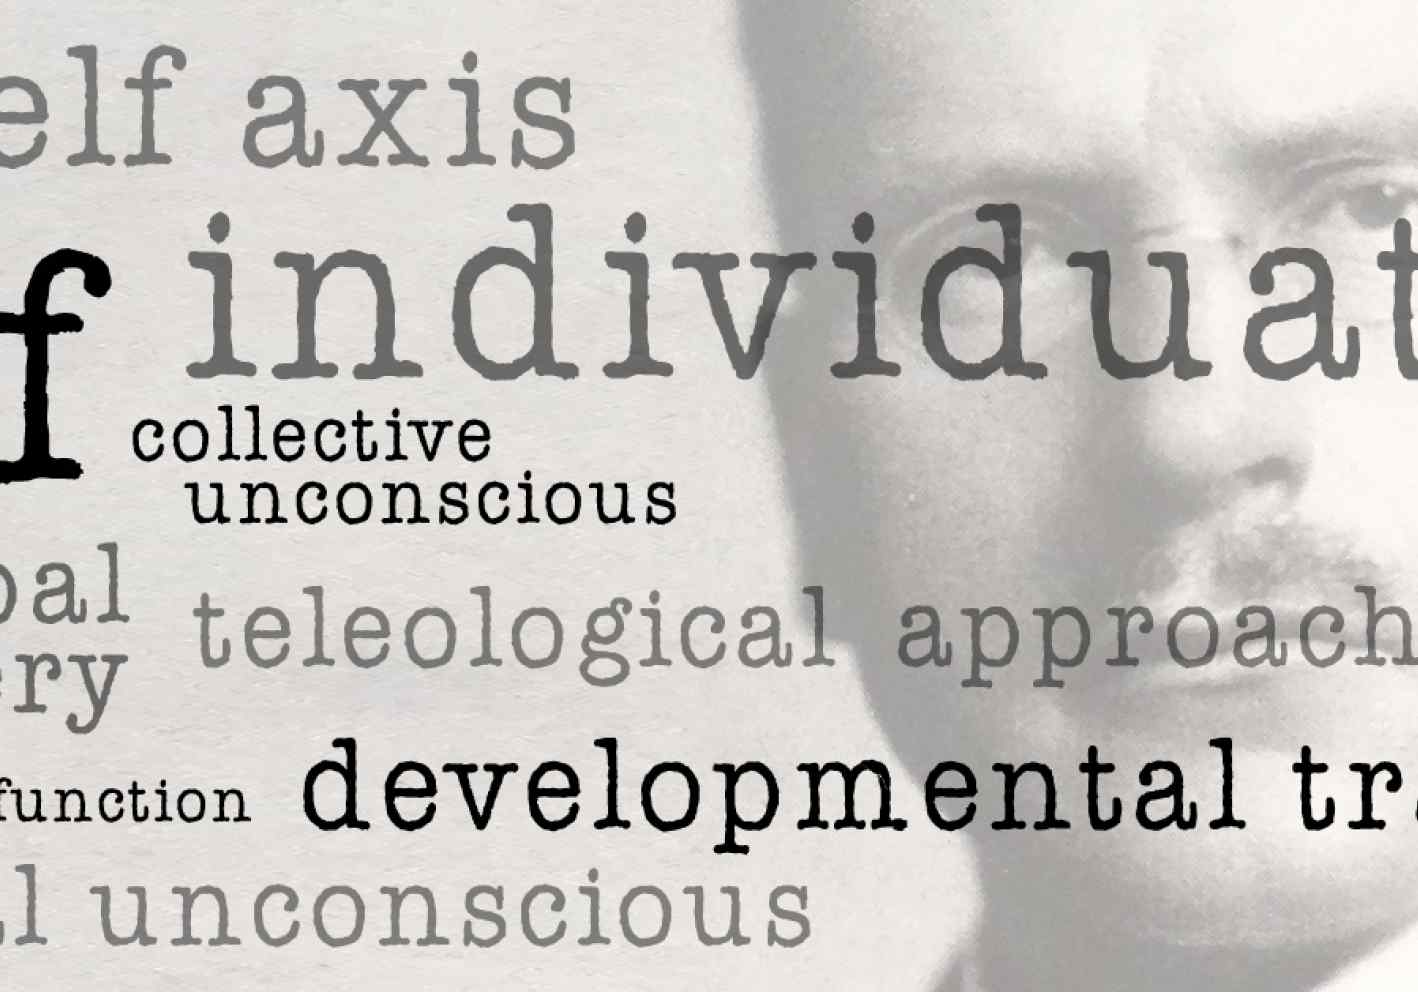 Some Jungian terms explained